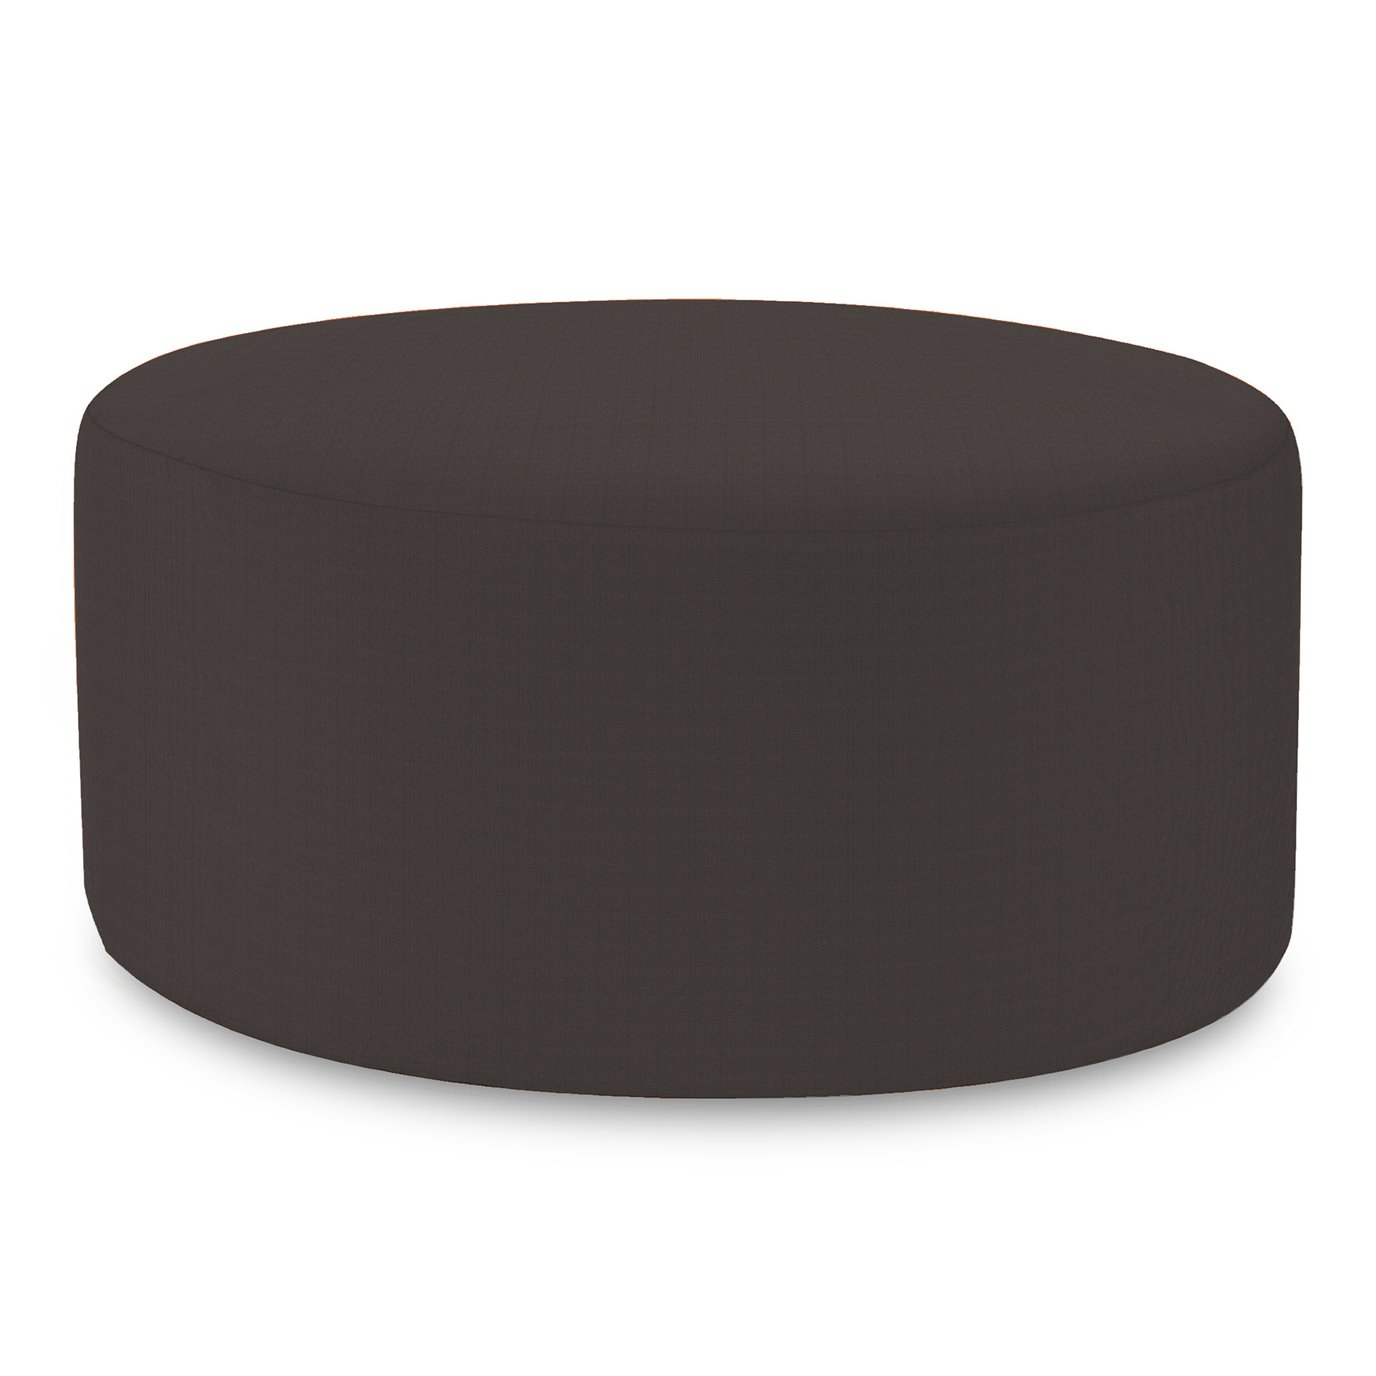 Howard Elliott Universal Round Ottoman Cover Sunbrella Outdoor Seascape Charcoal - Cover Only, Base Not Included